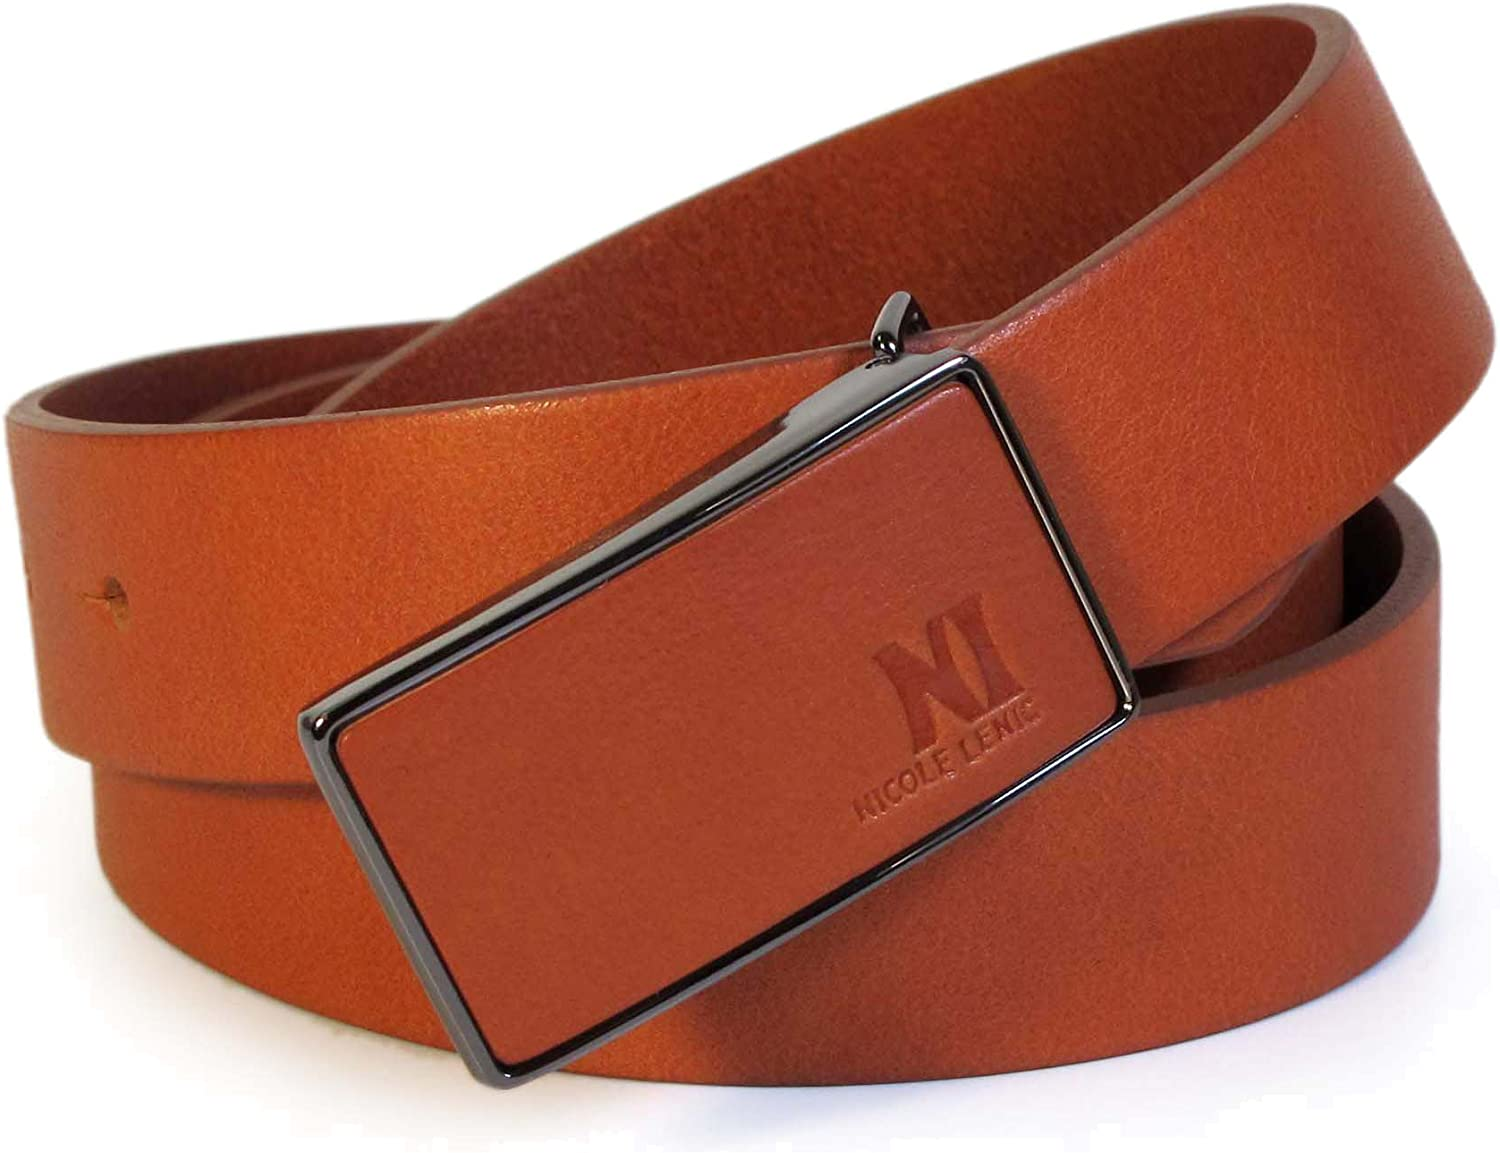 CU0 Mens Real Genuine Leather Belt Black Brown White 1.1 Wide S-L Casual Jeans